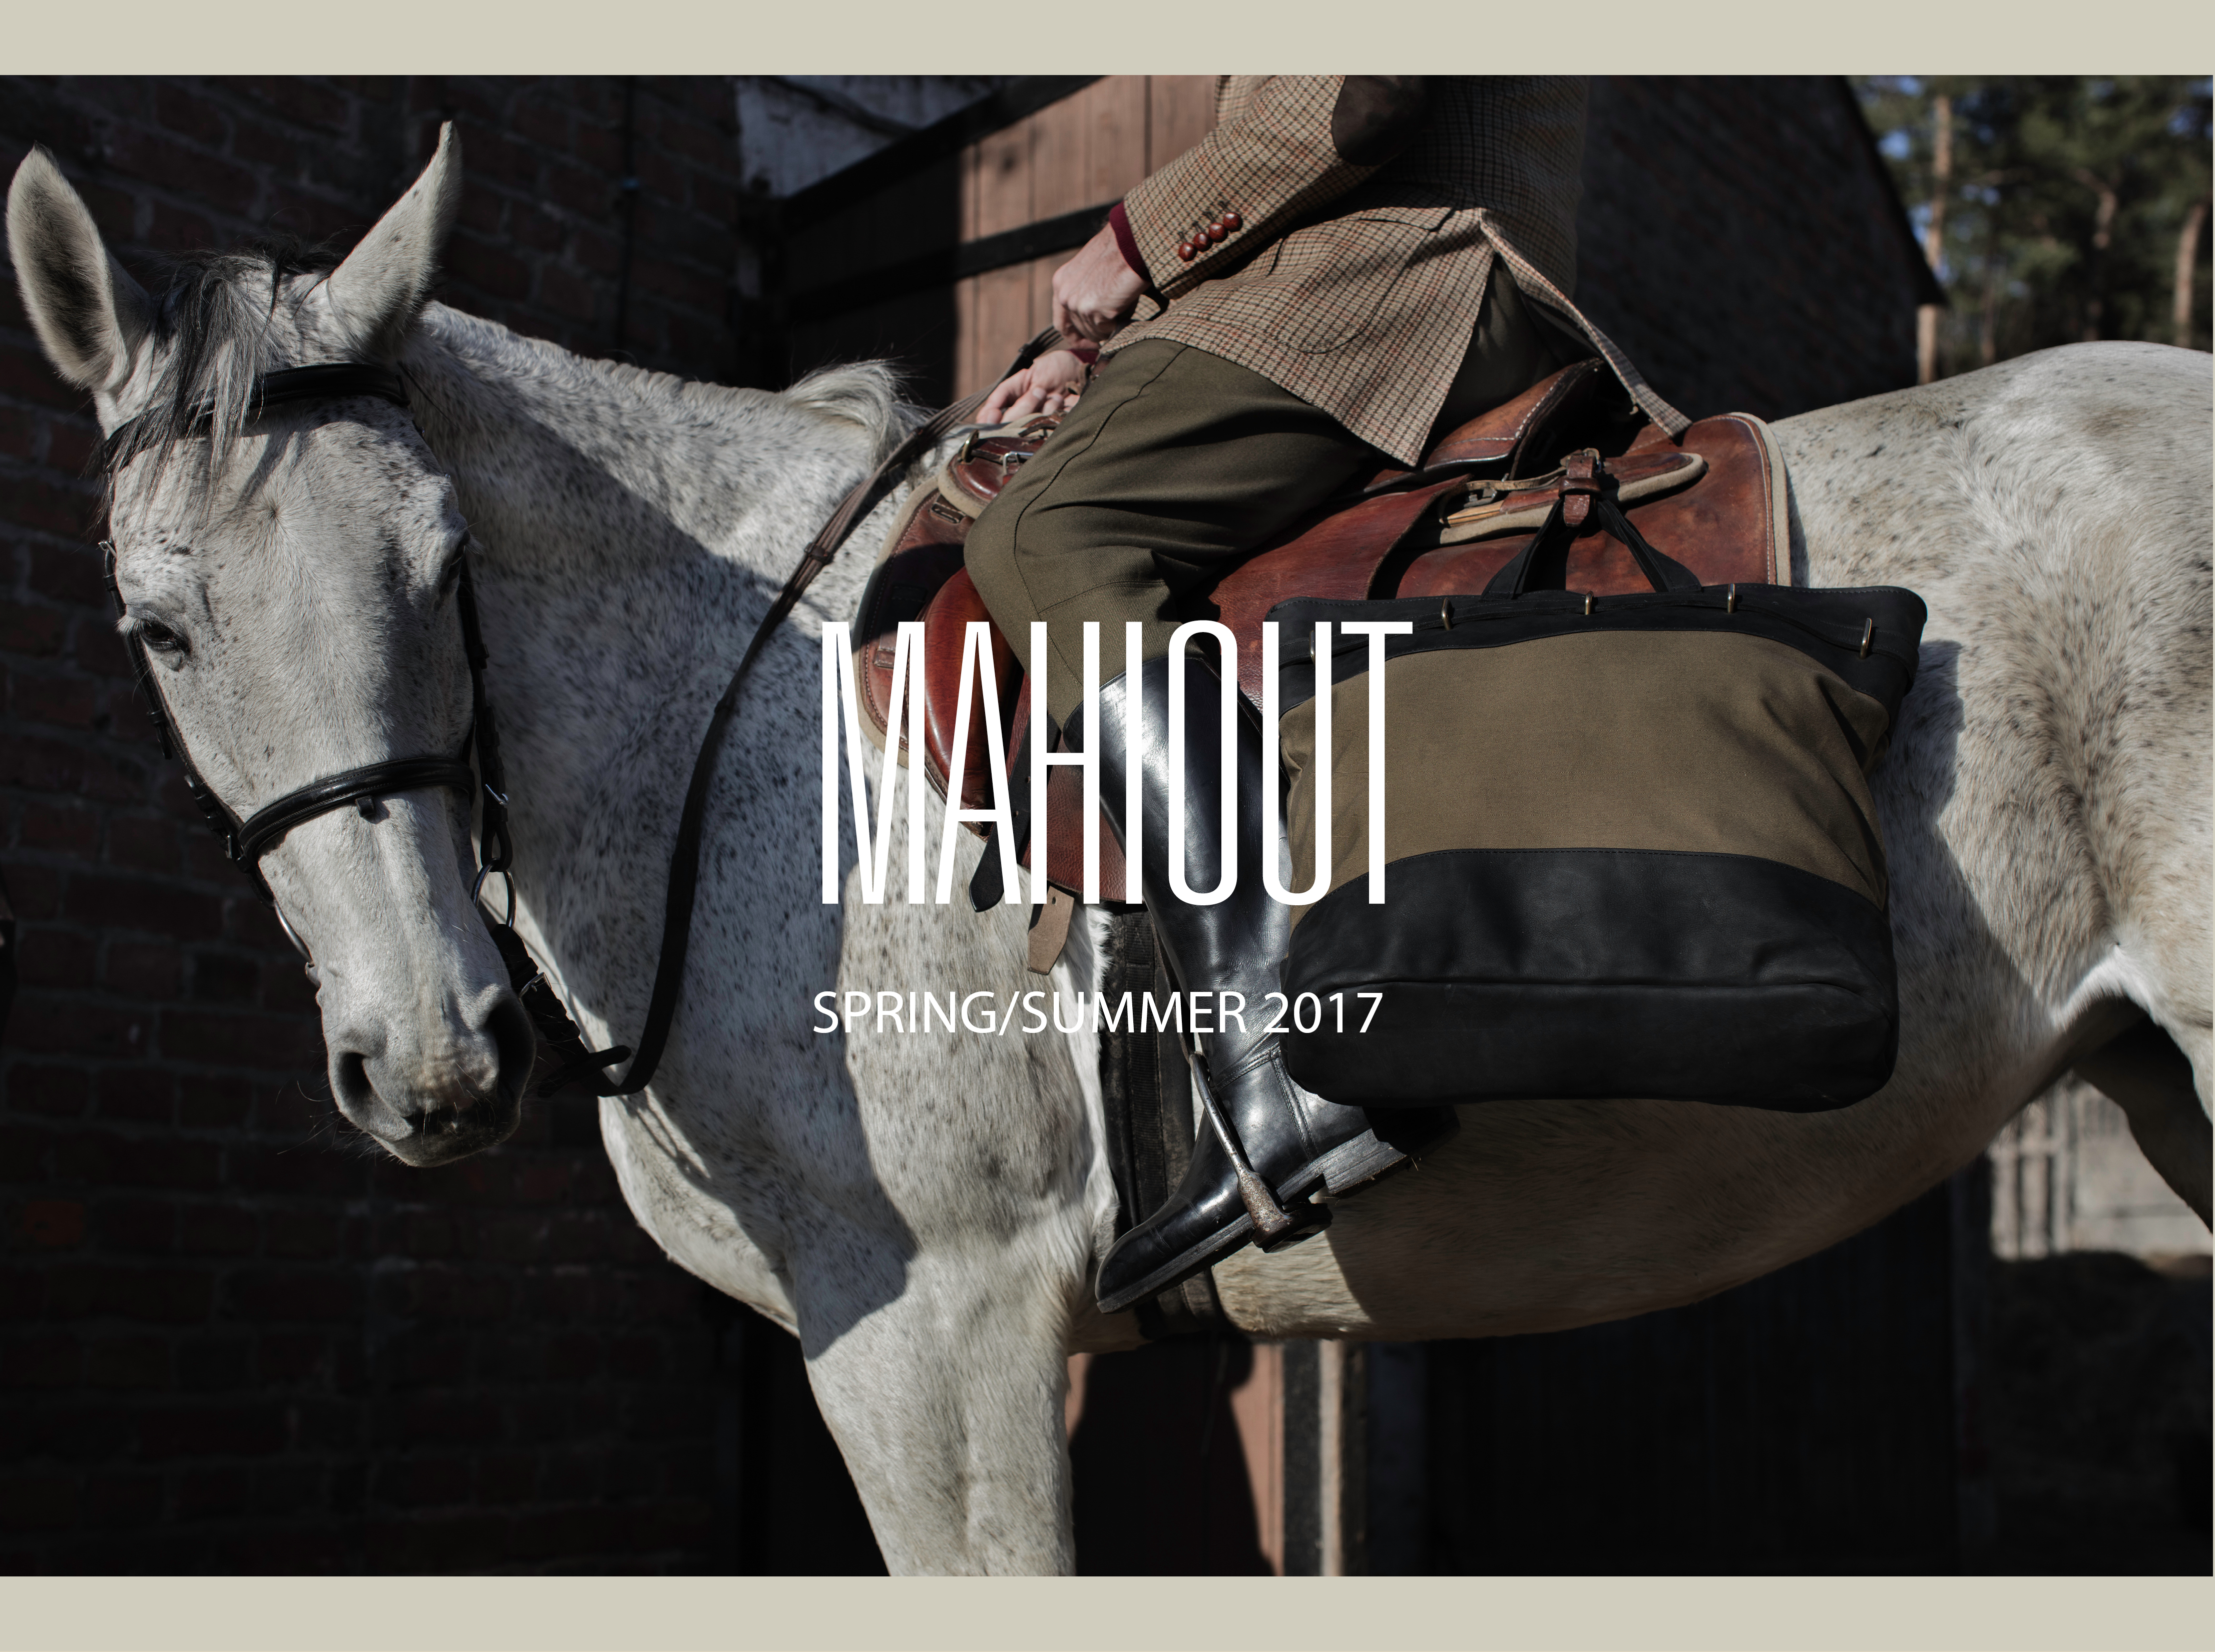 mahiout lookbook ss17 bags accessories luggage